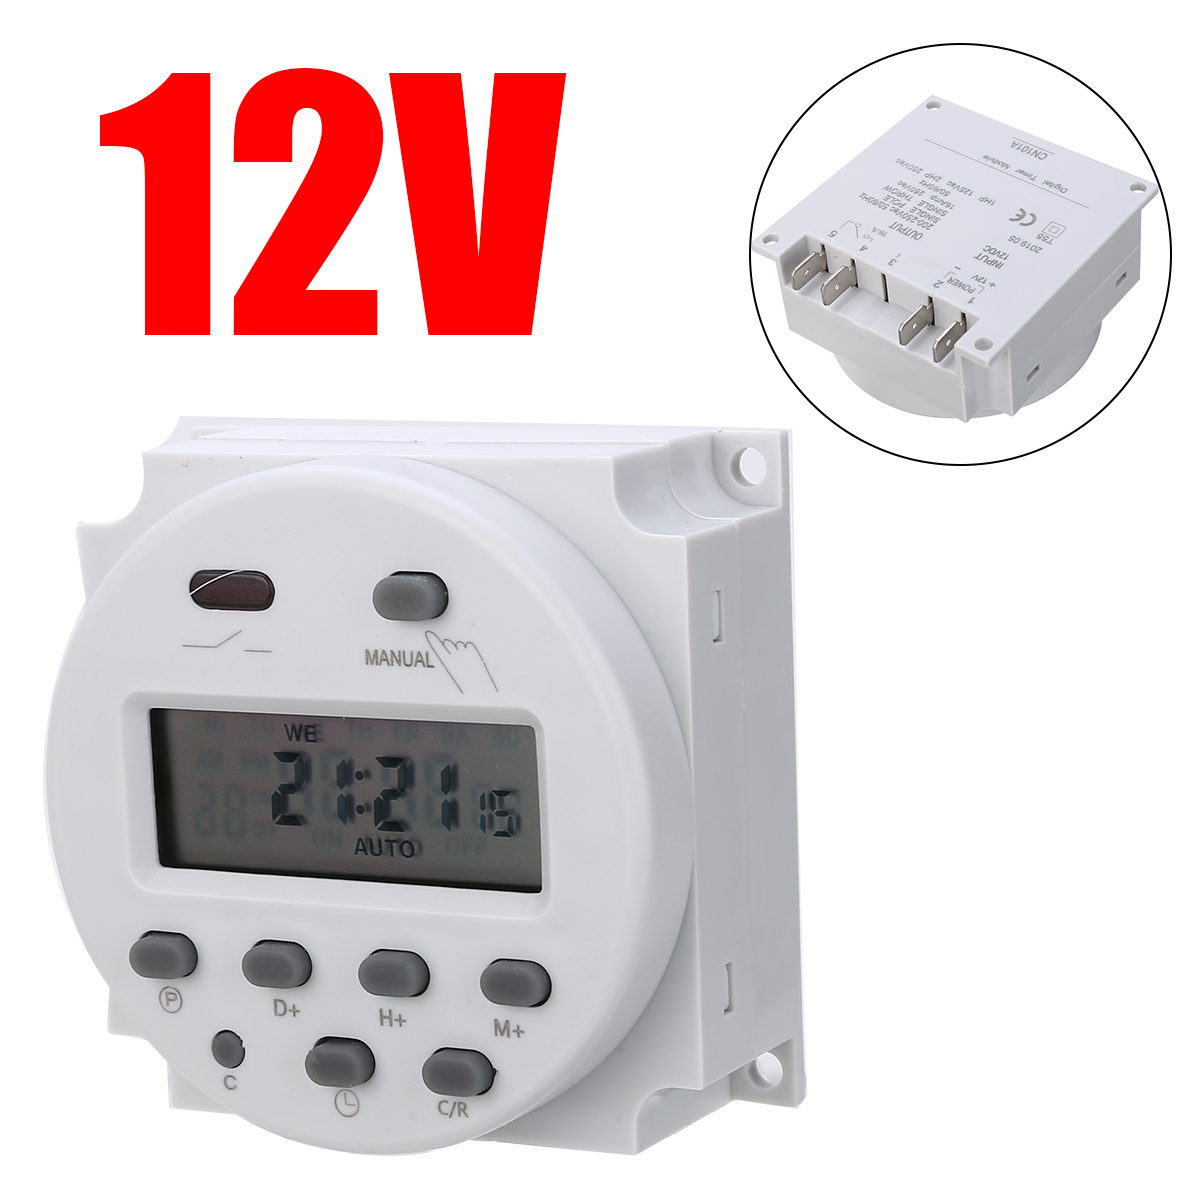 B7 12V DC Digital LCD Display PLC Programmable Time counter Timer switch Relay